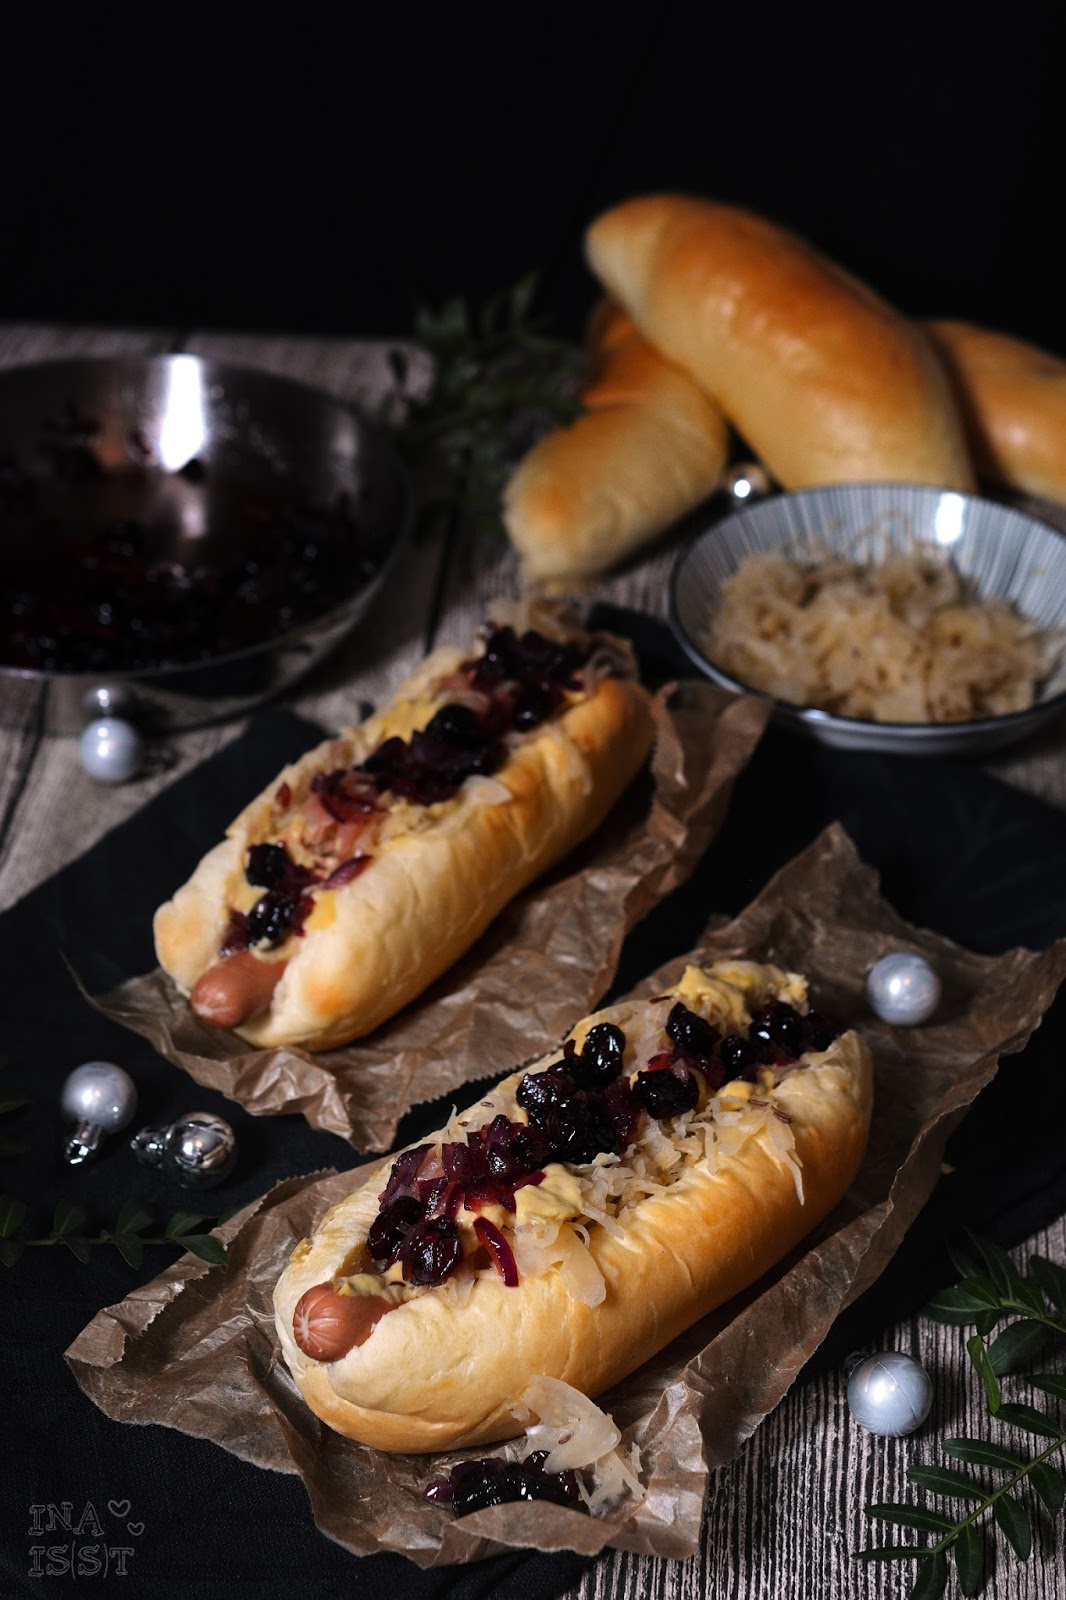 How To Season Sauerkraut For Hot Dogs